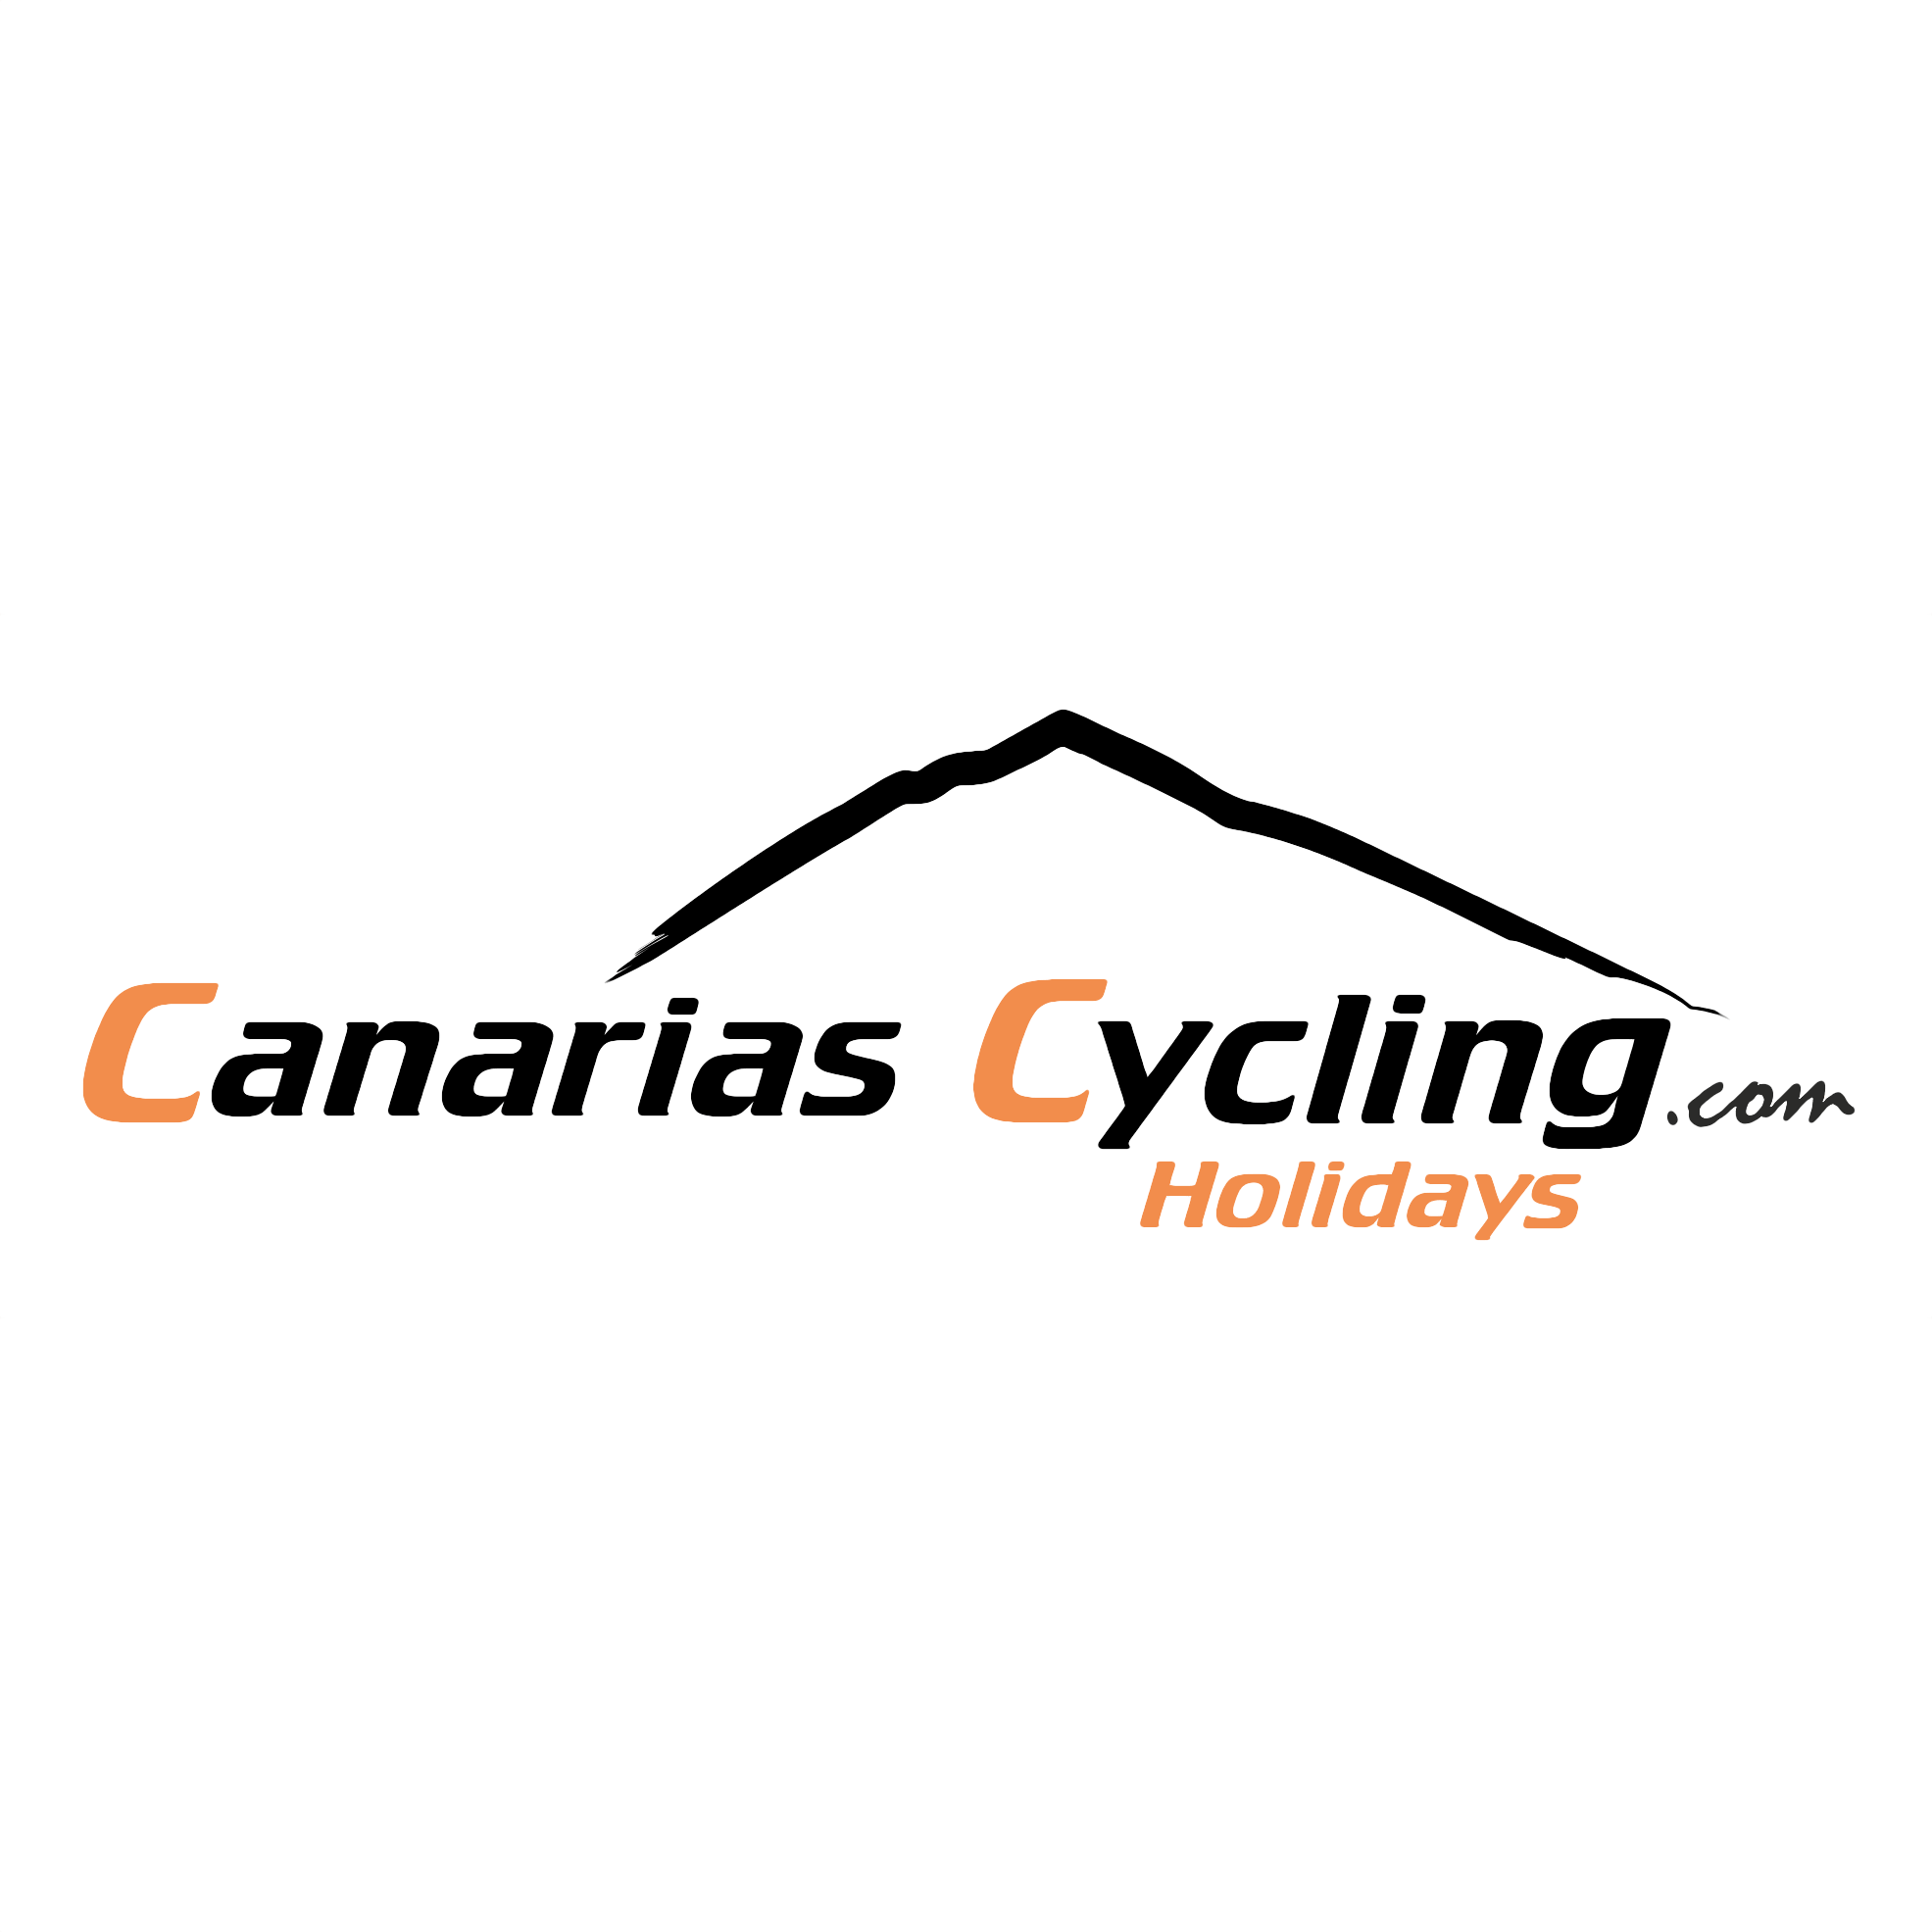 Canarias Cycling on Twitter: